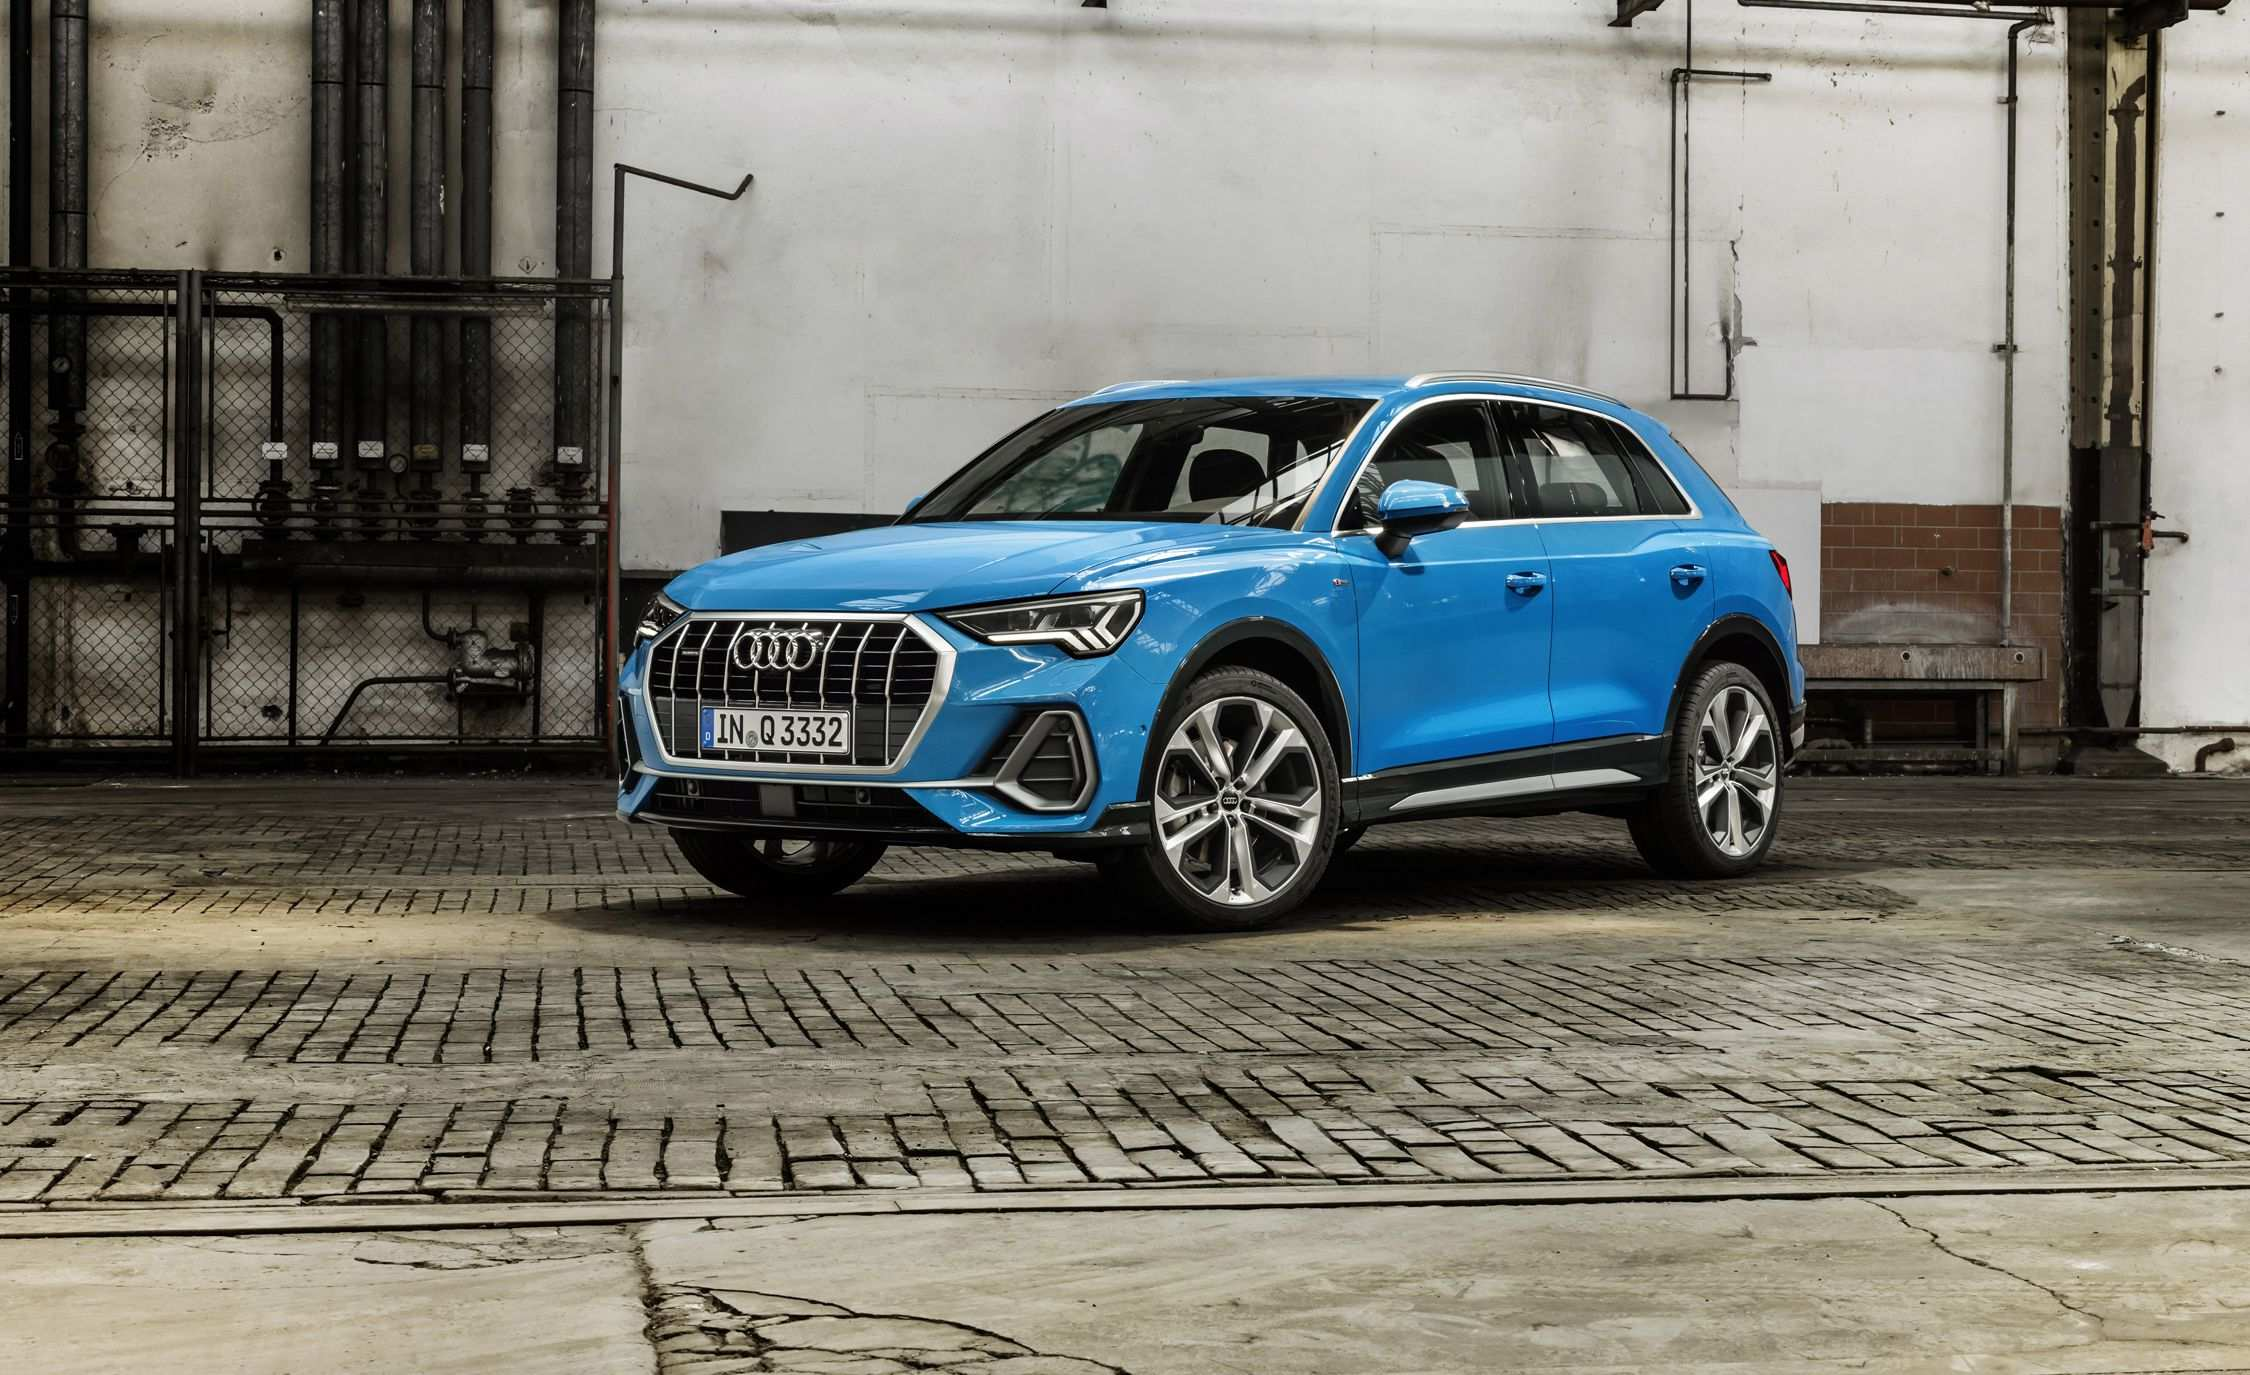 90 Concept of 2019 Audi Q3 Vs Volvo Xc40 Release Date Rumors for 2019 Audi Q3 Vs Volvo Xc40 Release Date